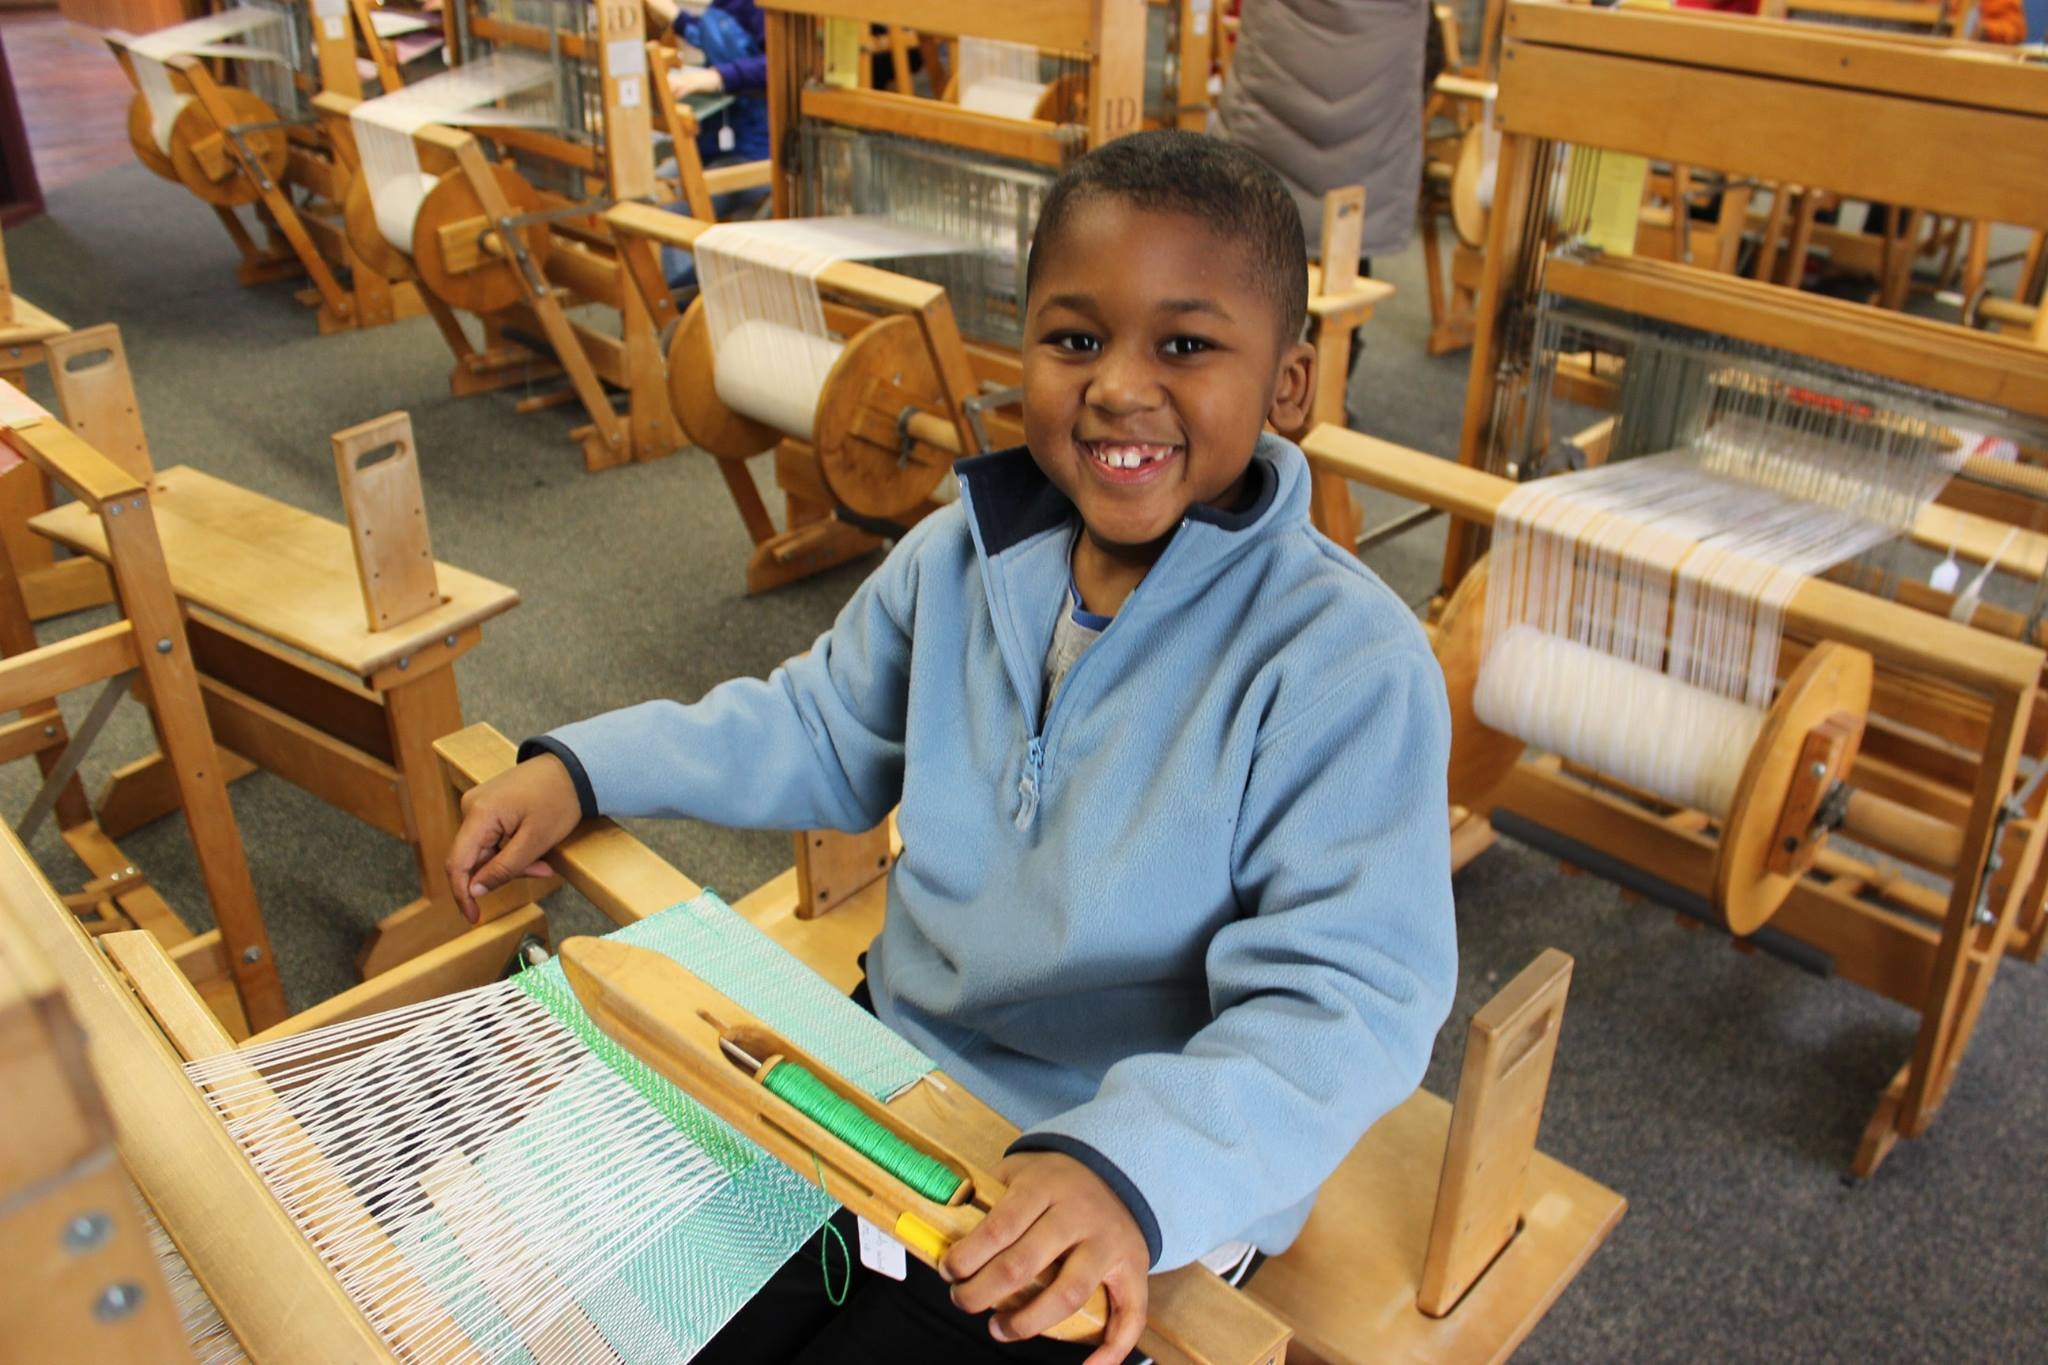 A boy weaving at the Tsongas Industrial History Center